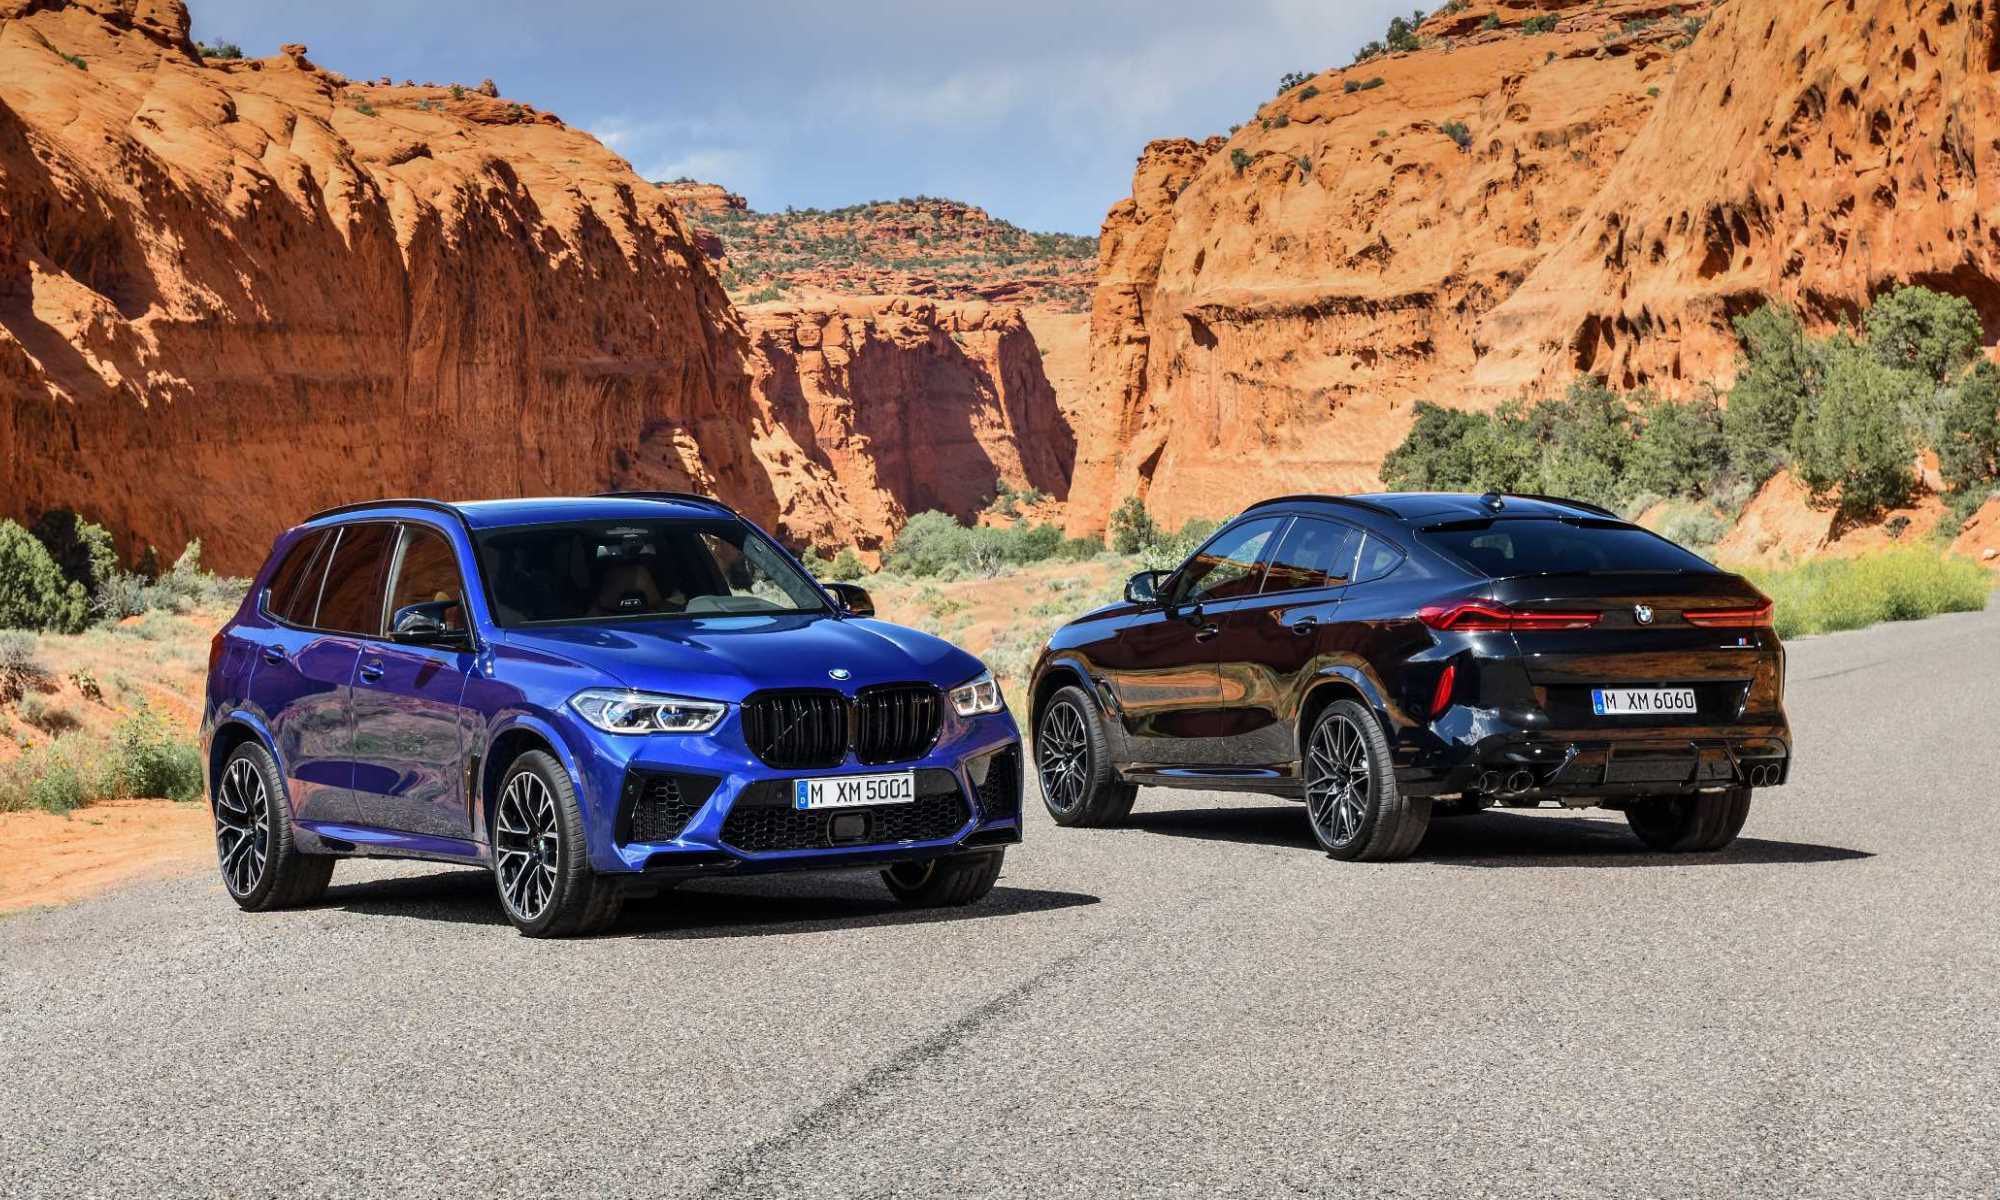 BMW X5M and BMW X6M